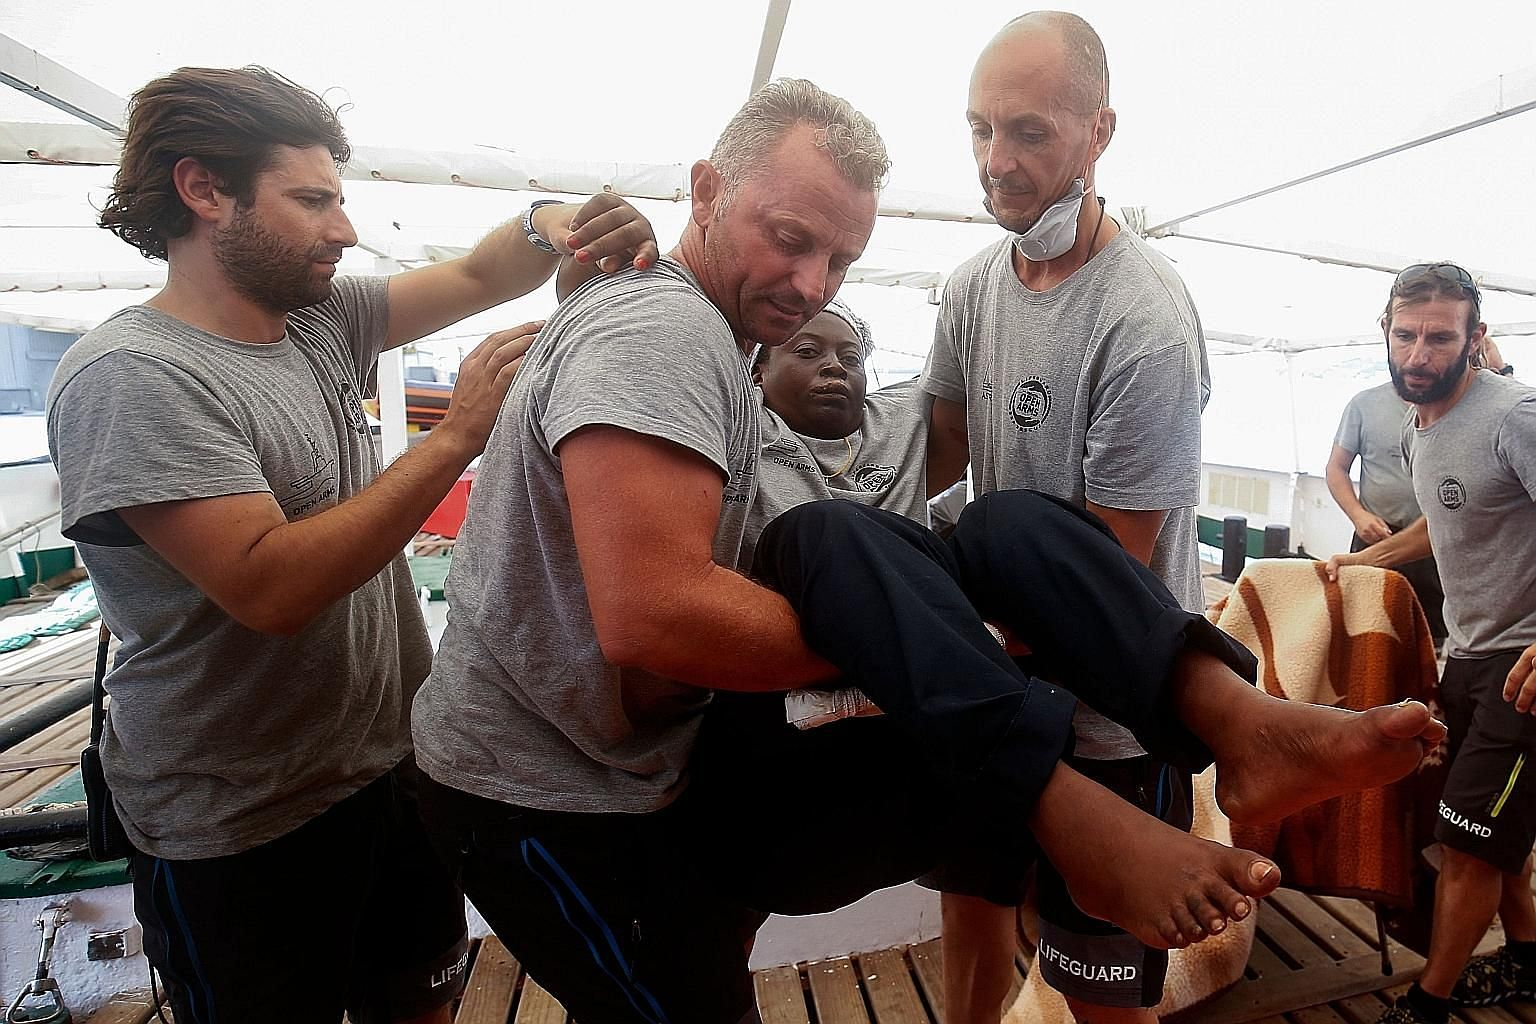 Ms Josepha, found drifting on a deflated dinghy, being carried off the Proactiva Open Arms boat in Palma, Spain, last Saturday.